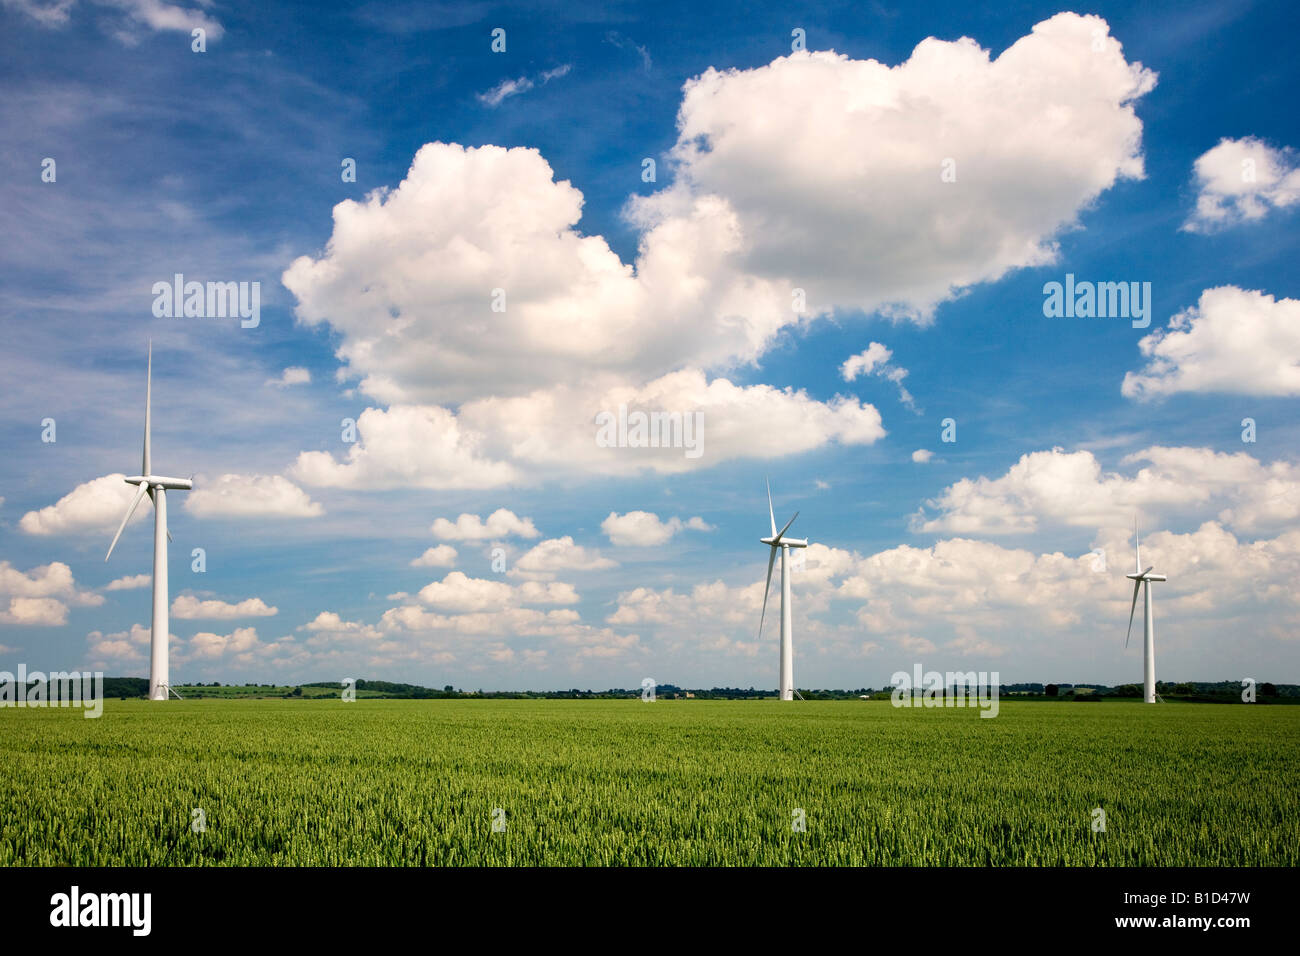 Three wind turbines in a field of wheat against a summer sky on an inshore wind farm in Oxfordshire, England, UK Stock Photo